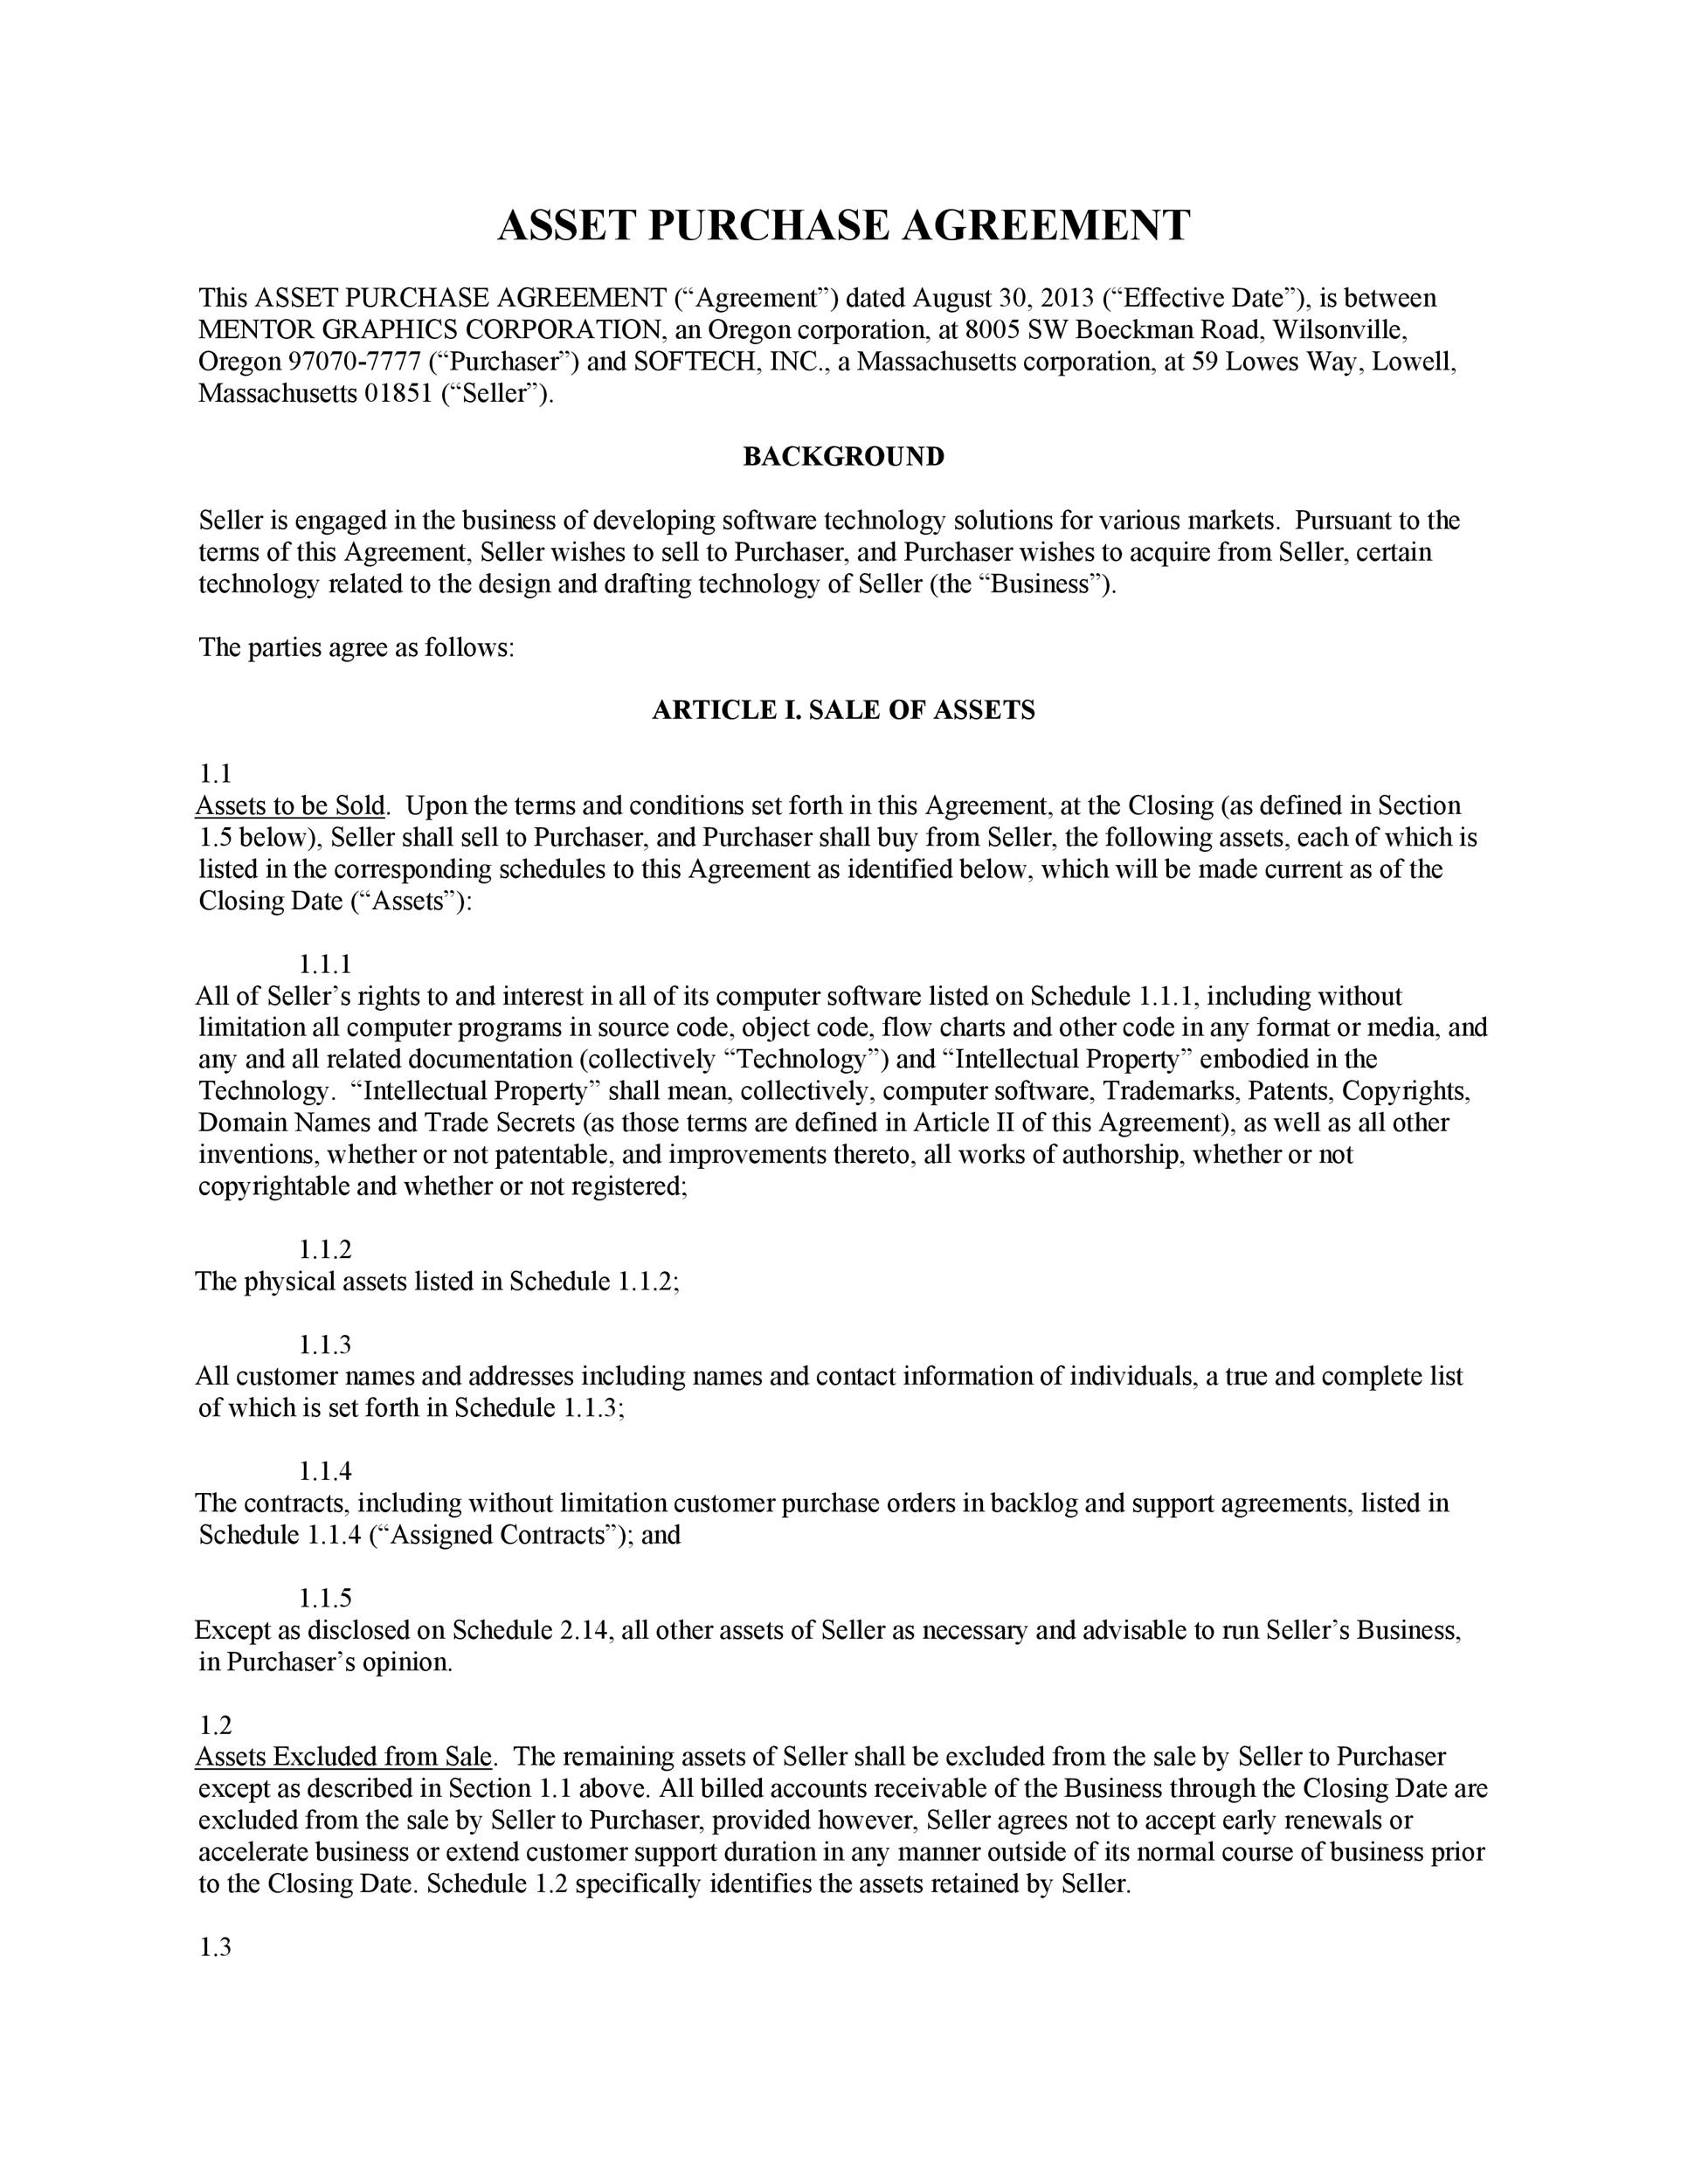 Free Purchase Agreement Template 07